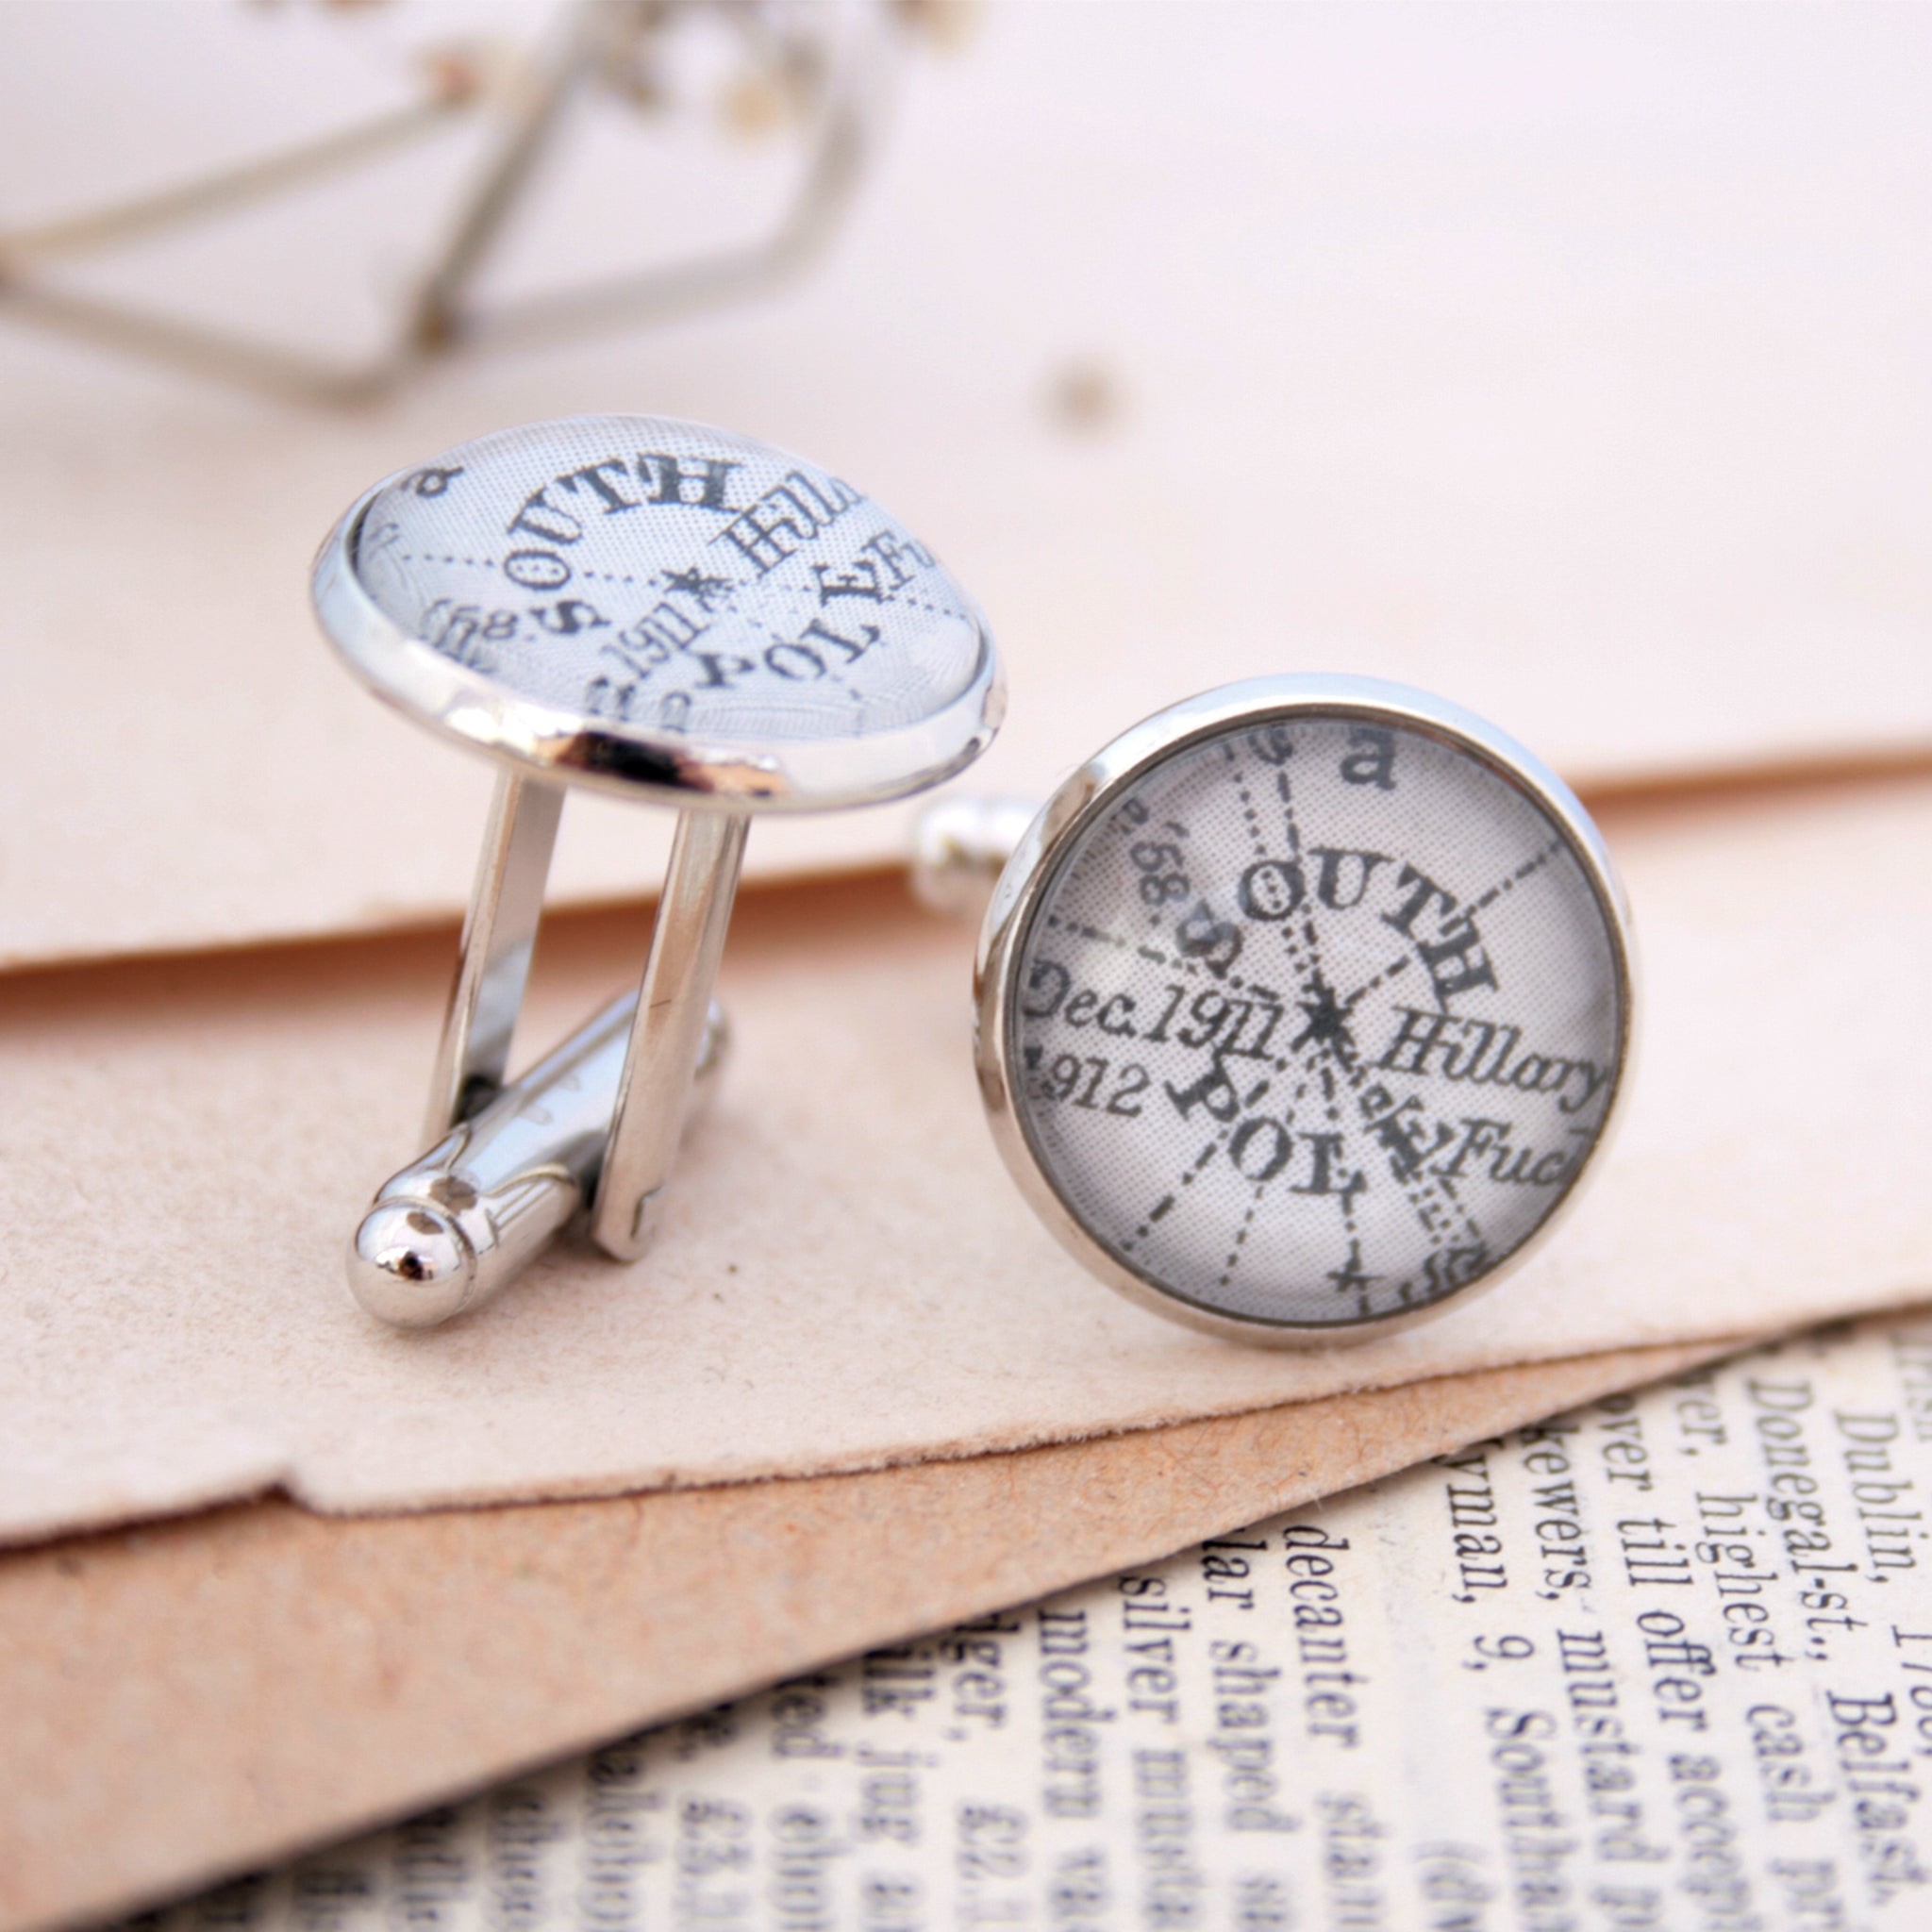 Personalised map cufflinks in silver tone featuring maps of South Pole